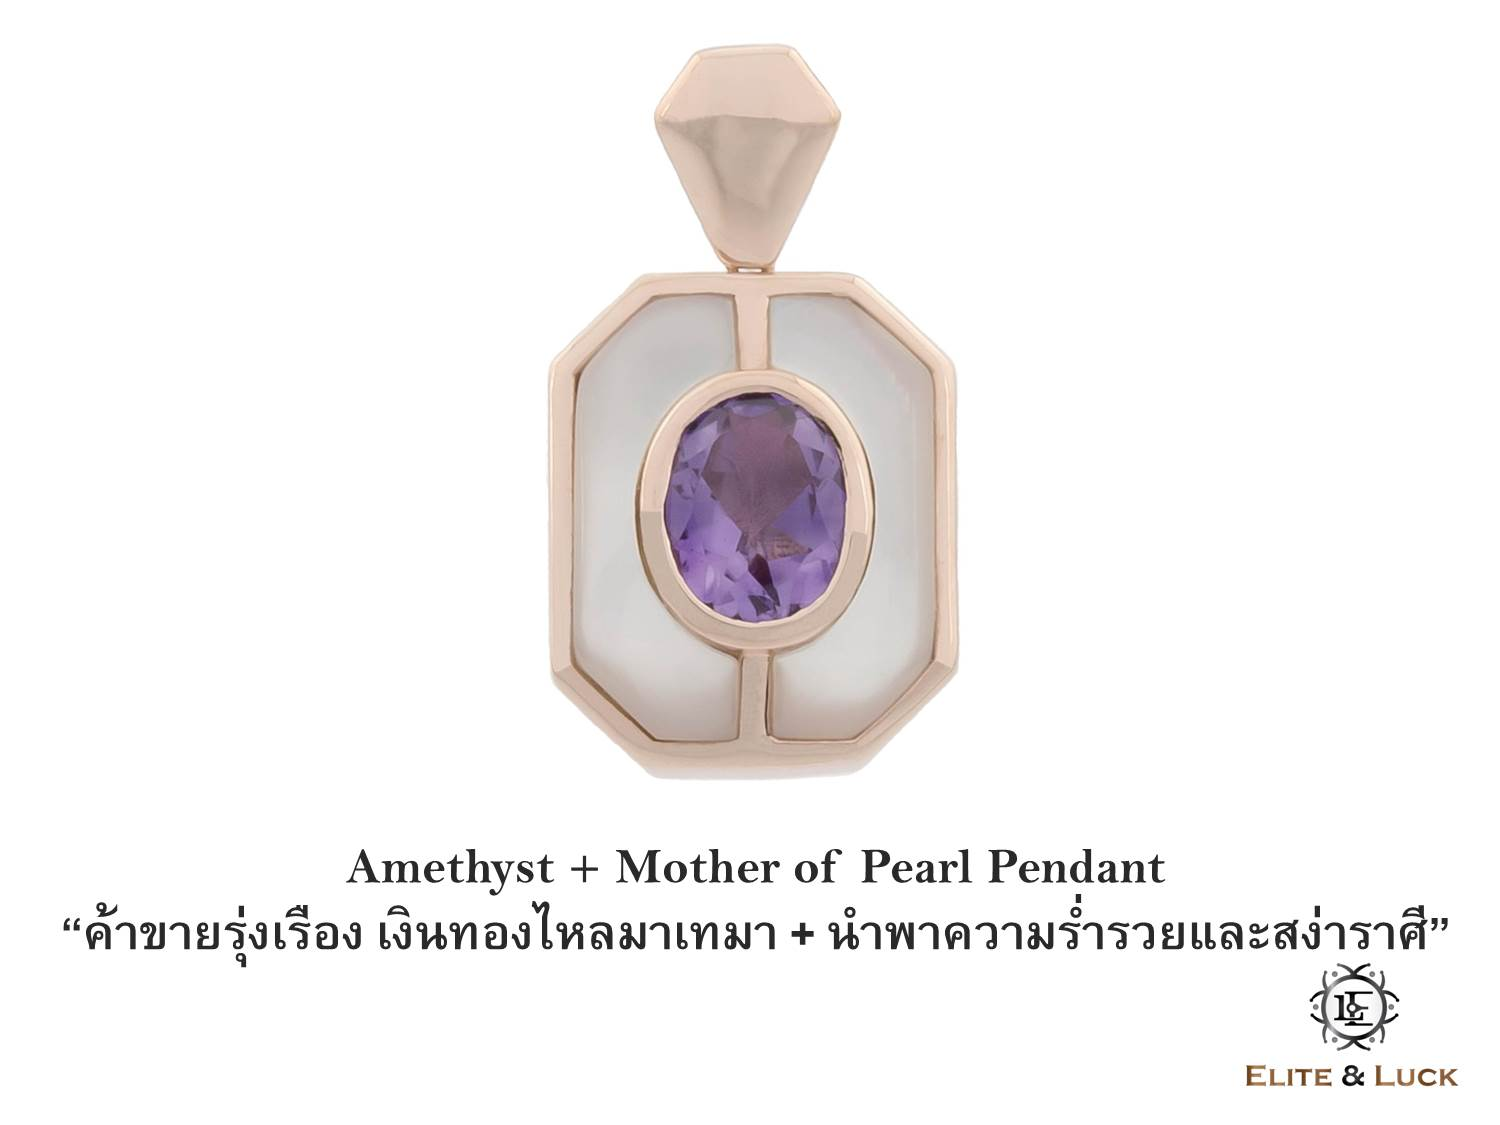 จี้ Amethyst + Mother of Pearl Sterling Silver สี Rose Gold รุ่น Charming